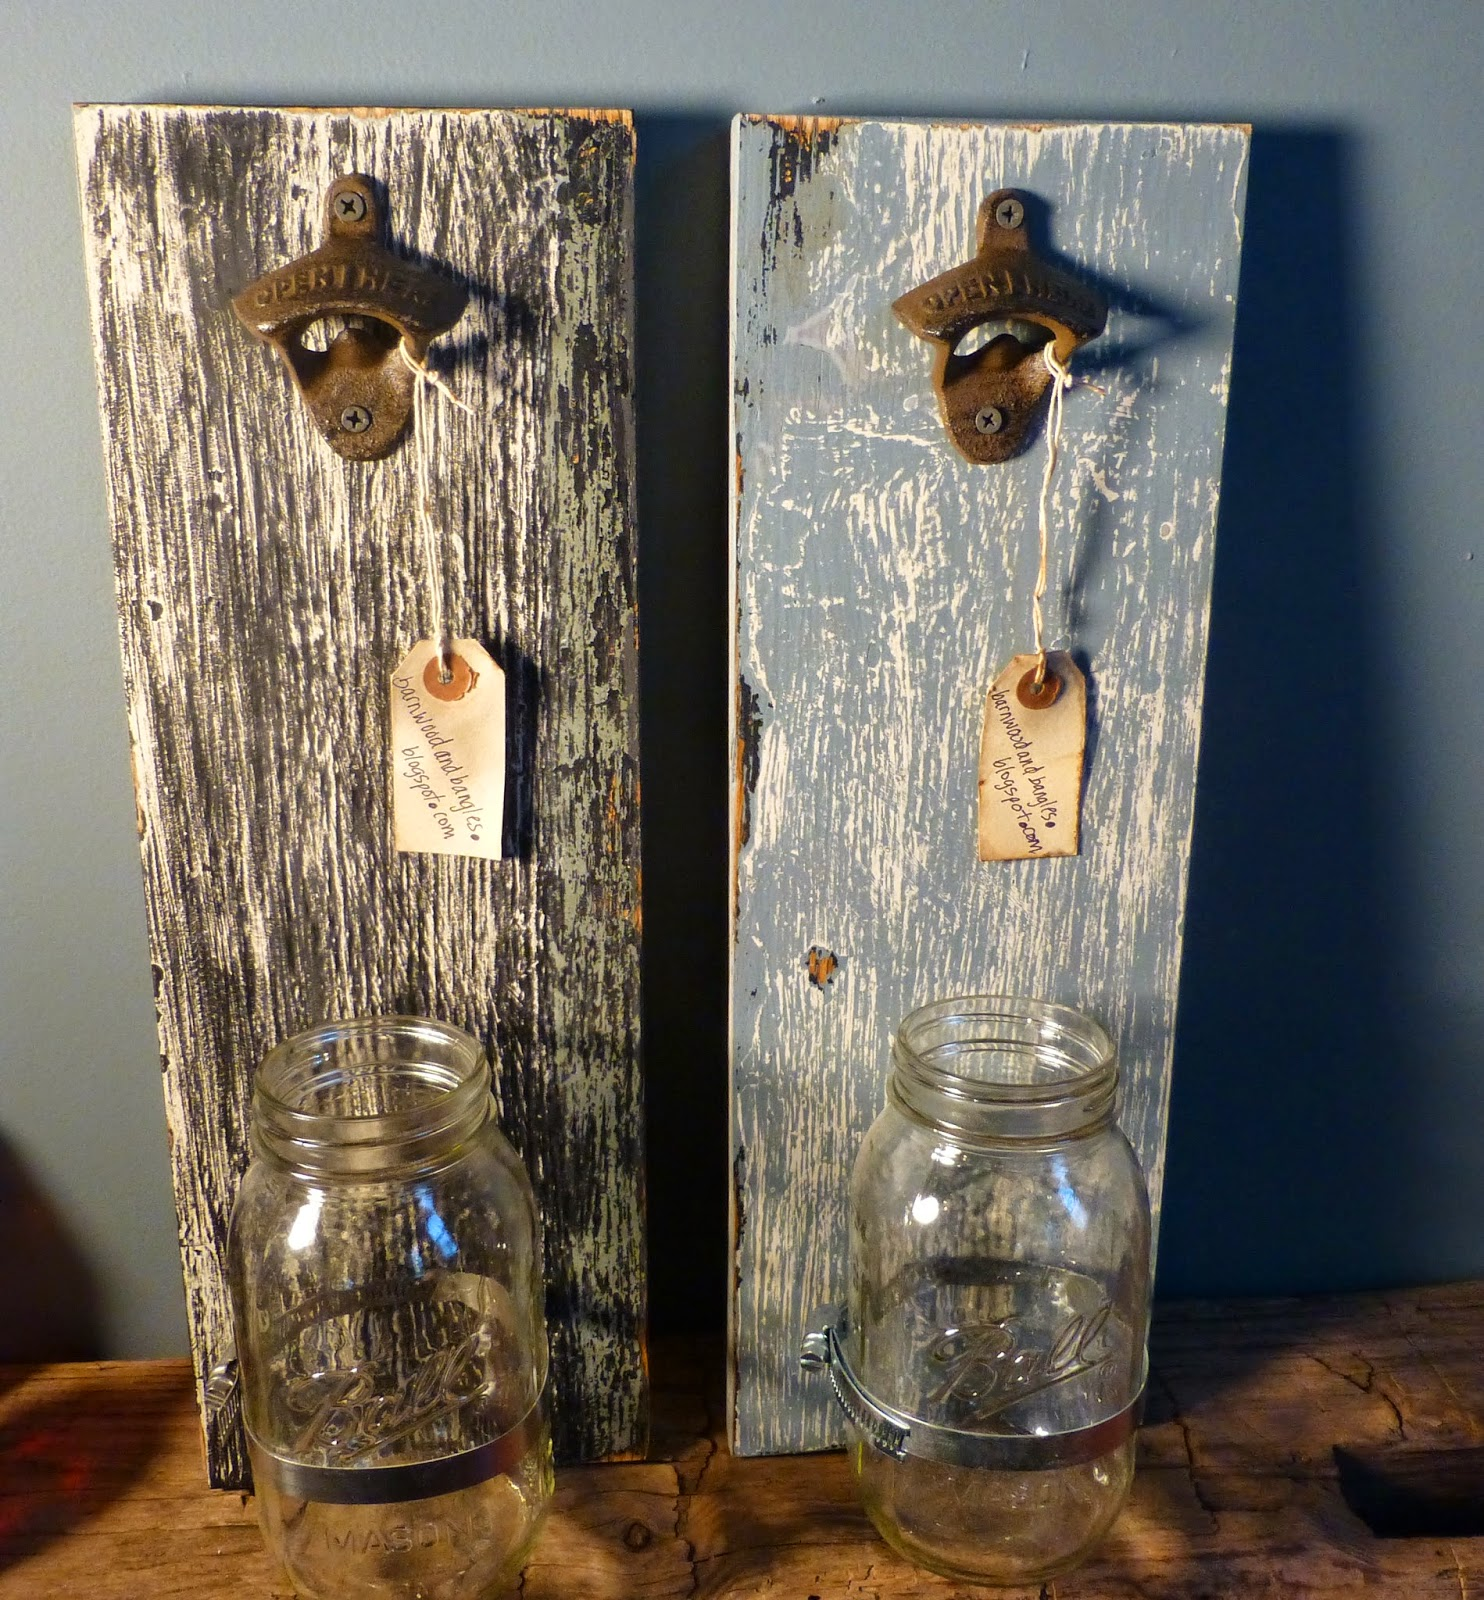 Barnwood And Bangles: Vintage And Reclaimed Wood Items